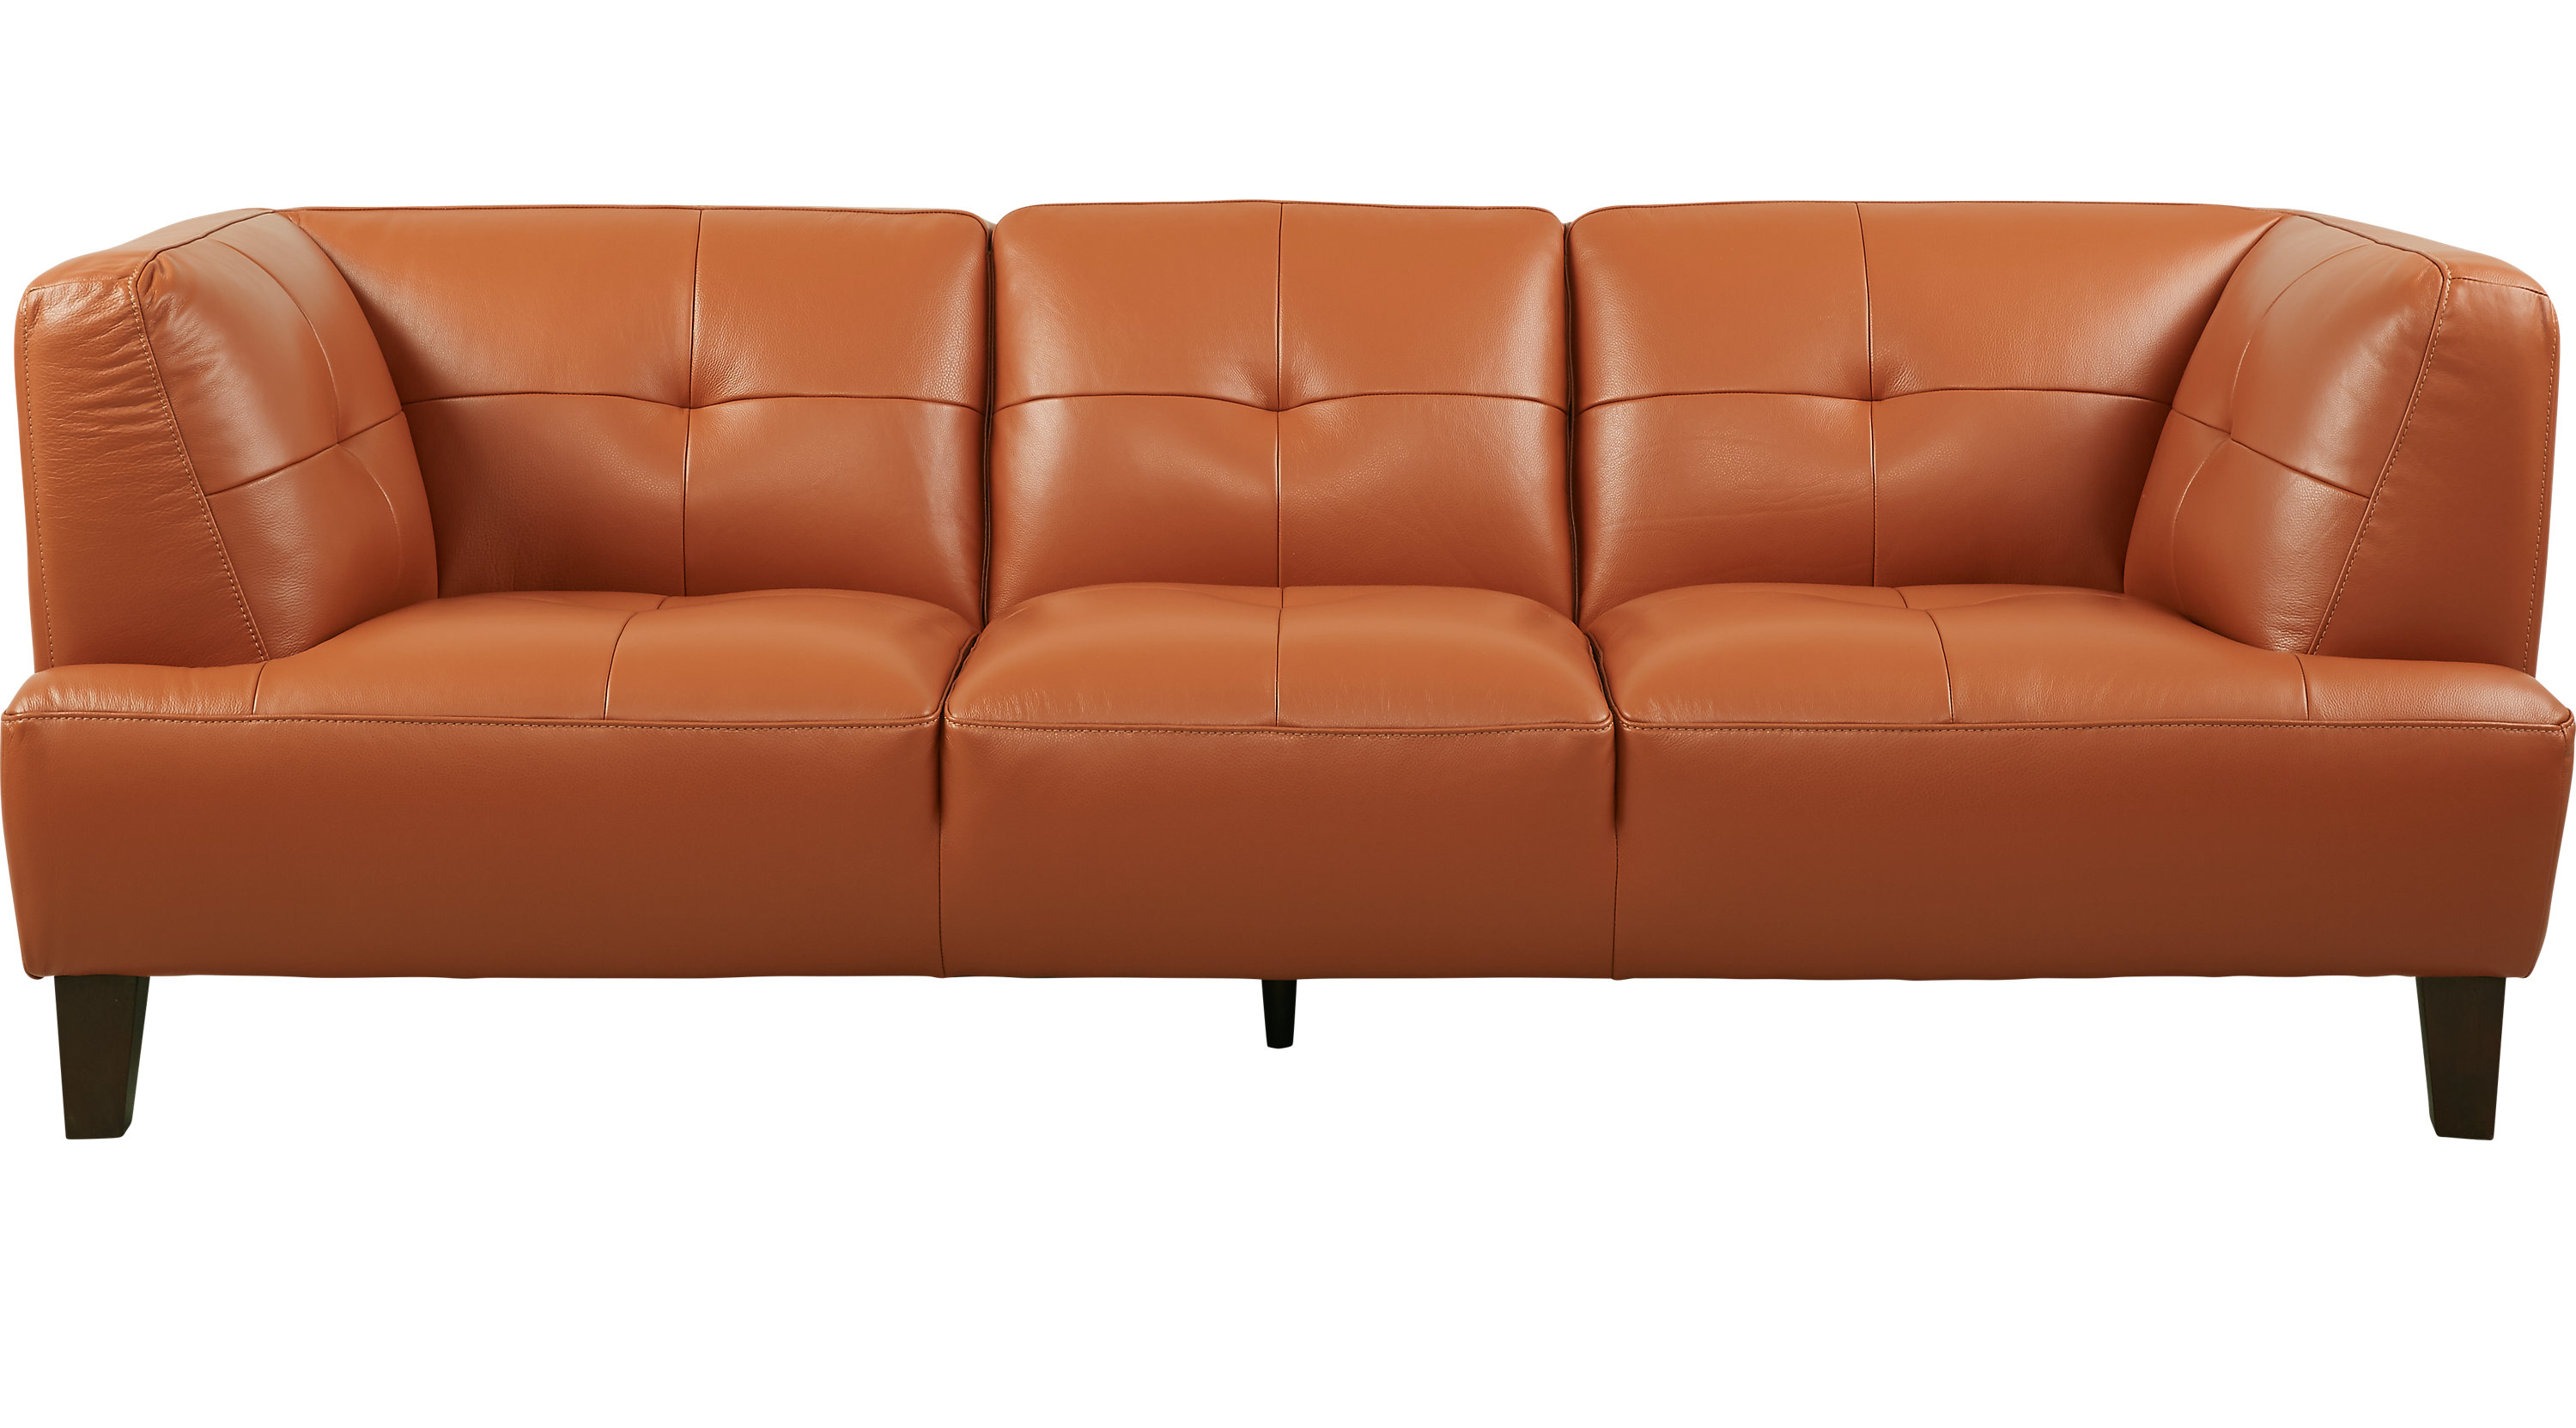 Etonnant Villa Capri Orange Leather Sofa